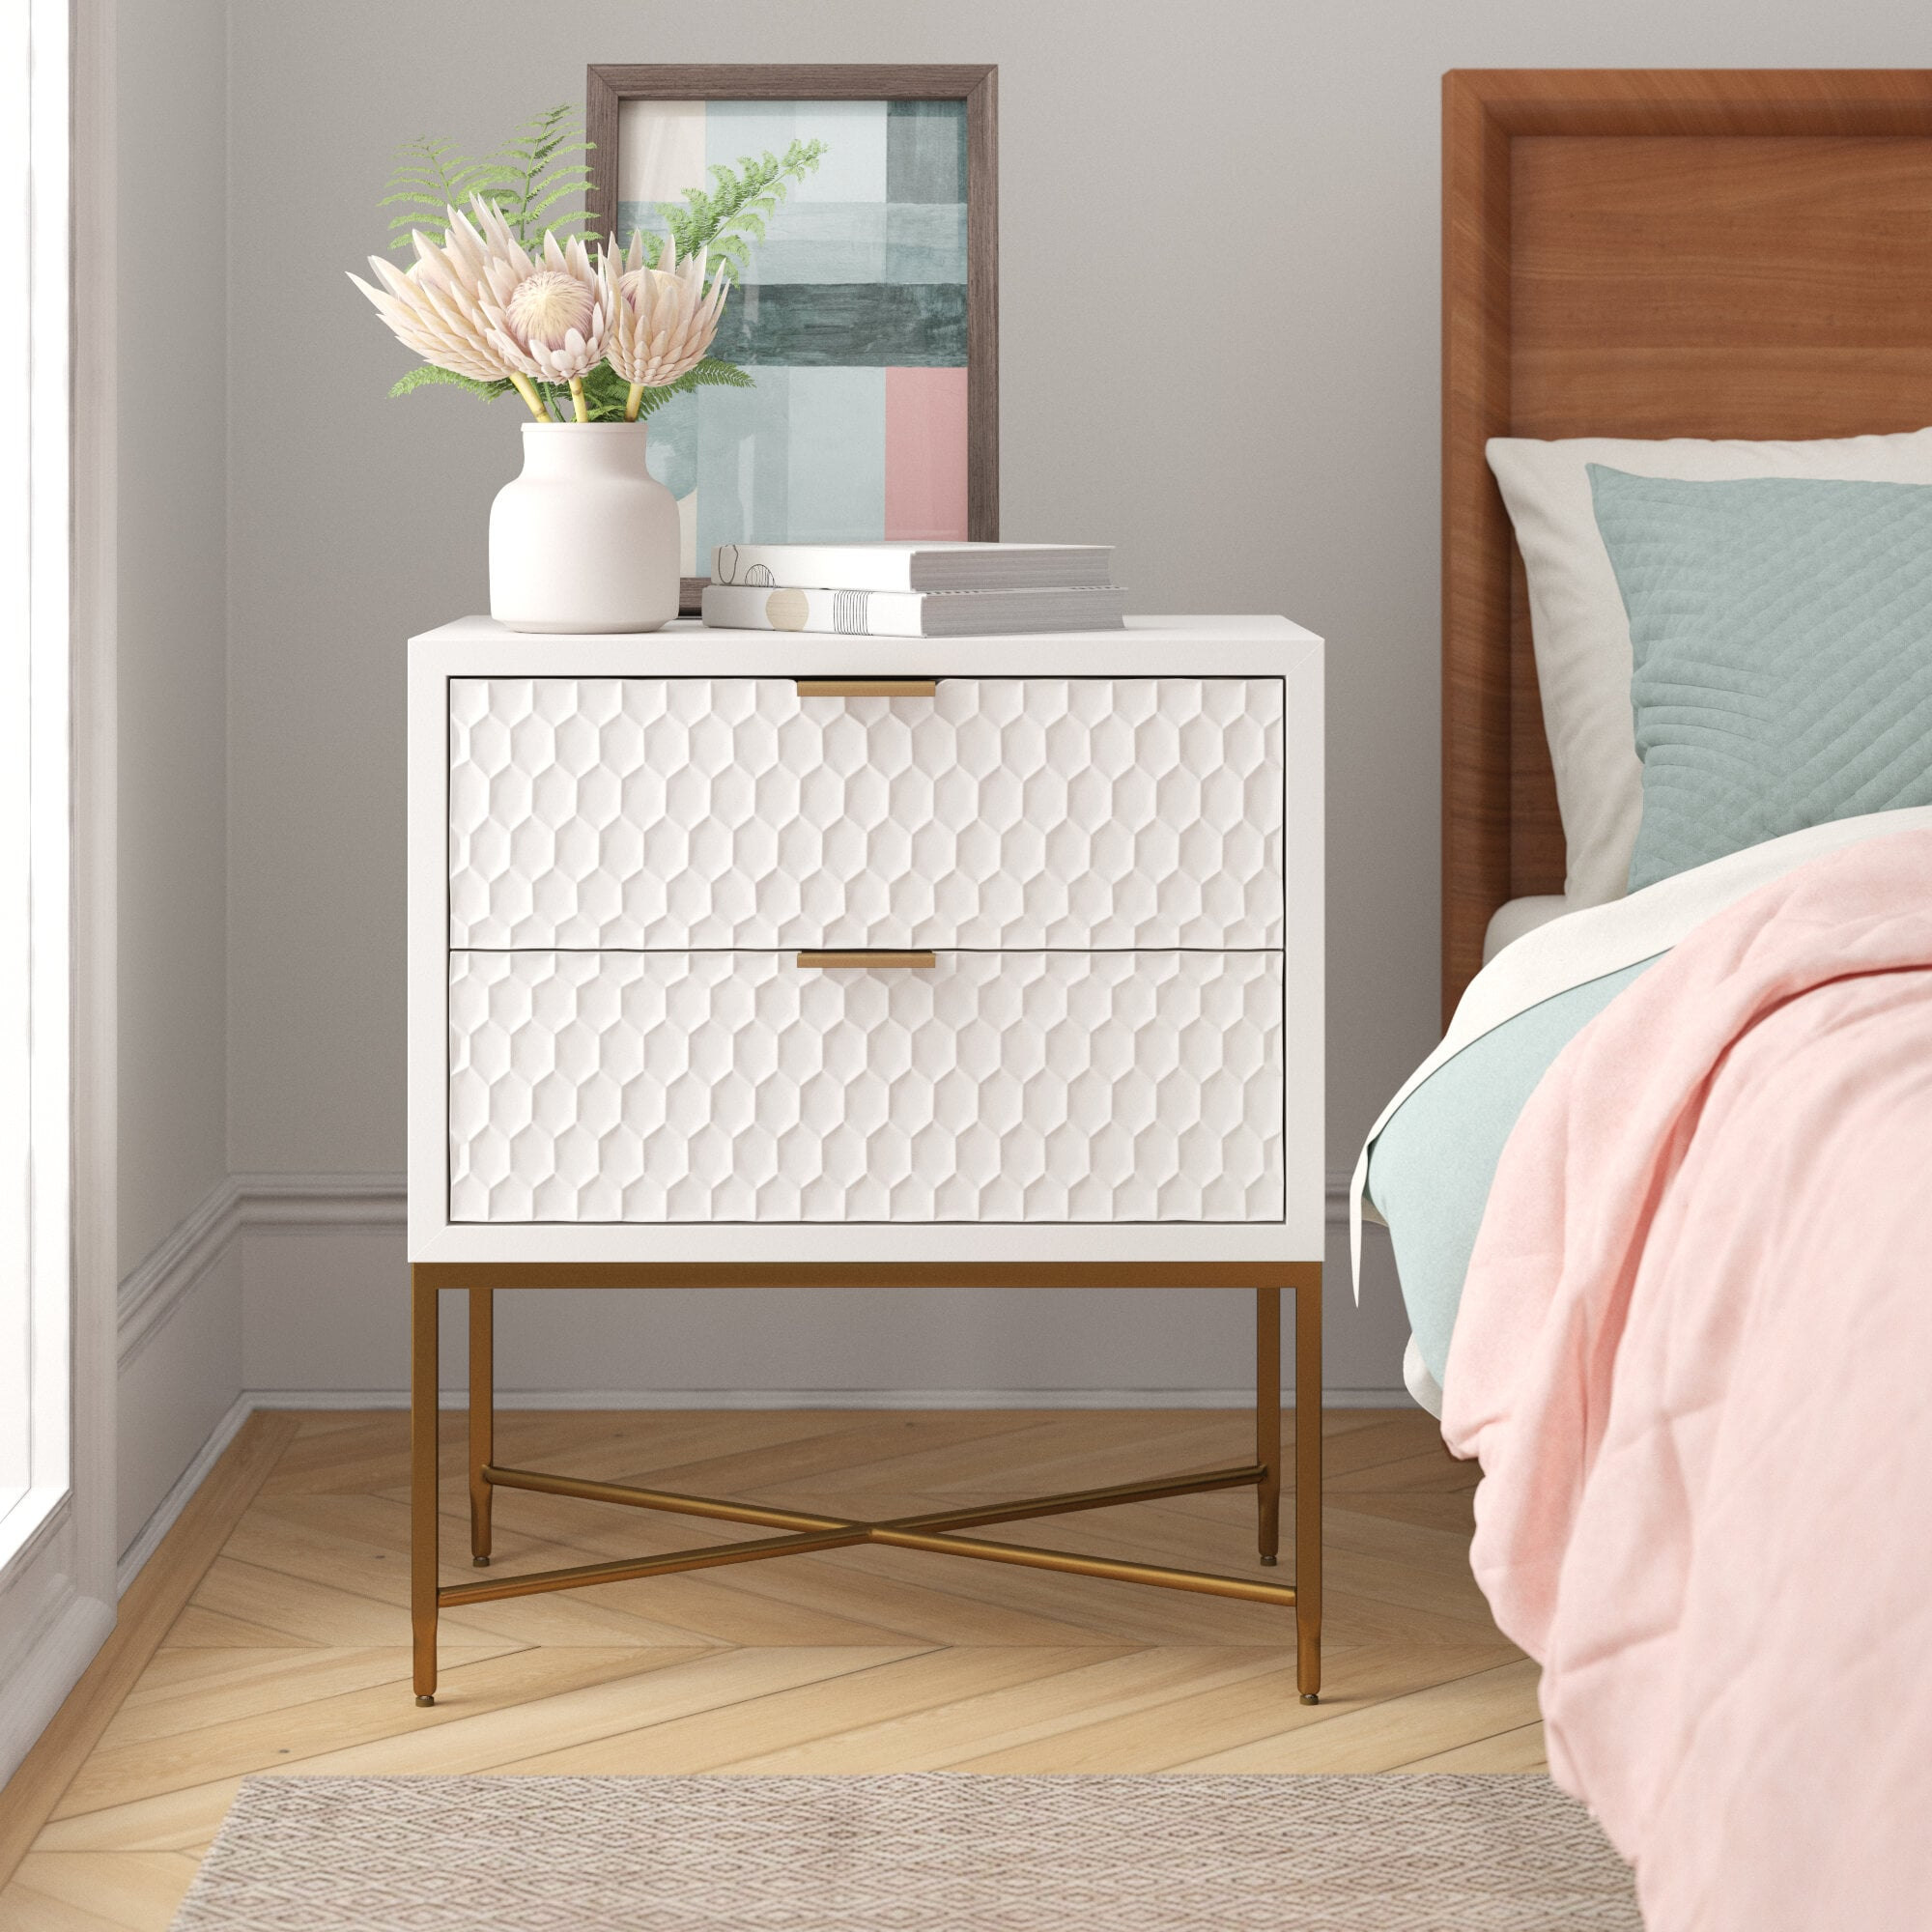 Francesca 2 Drawer Nightstand The 51 Best Deals You Can Score From Wayfair S Big Labor Day Weekend Sale Popsugar Home Photo 36